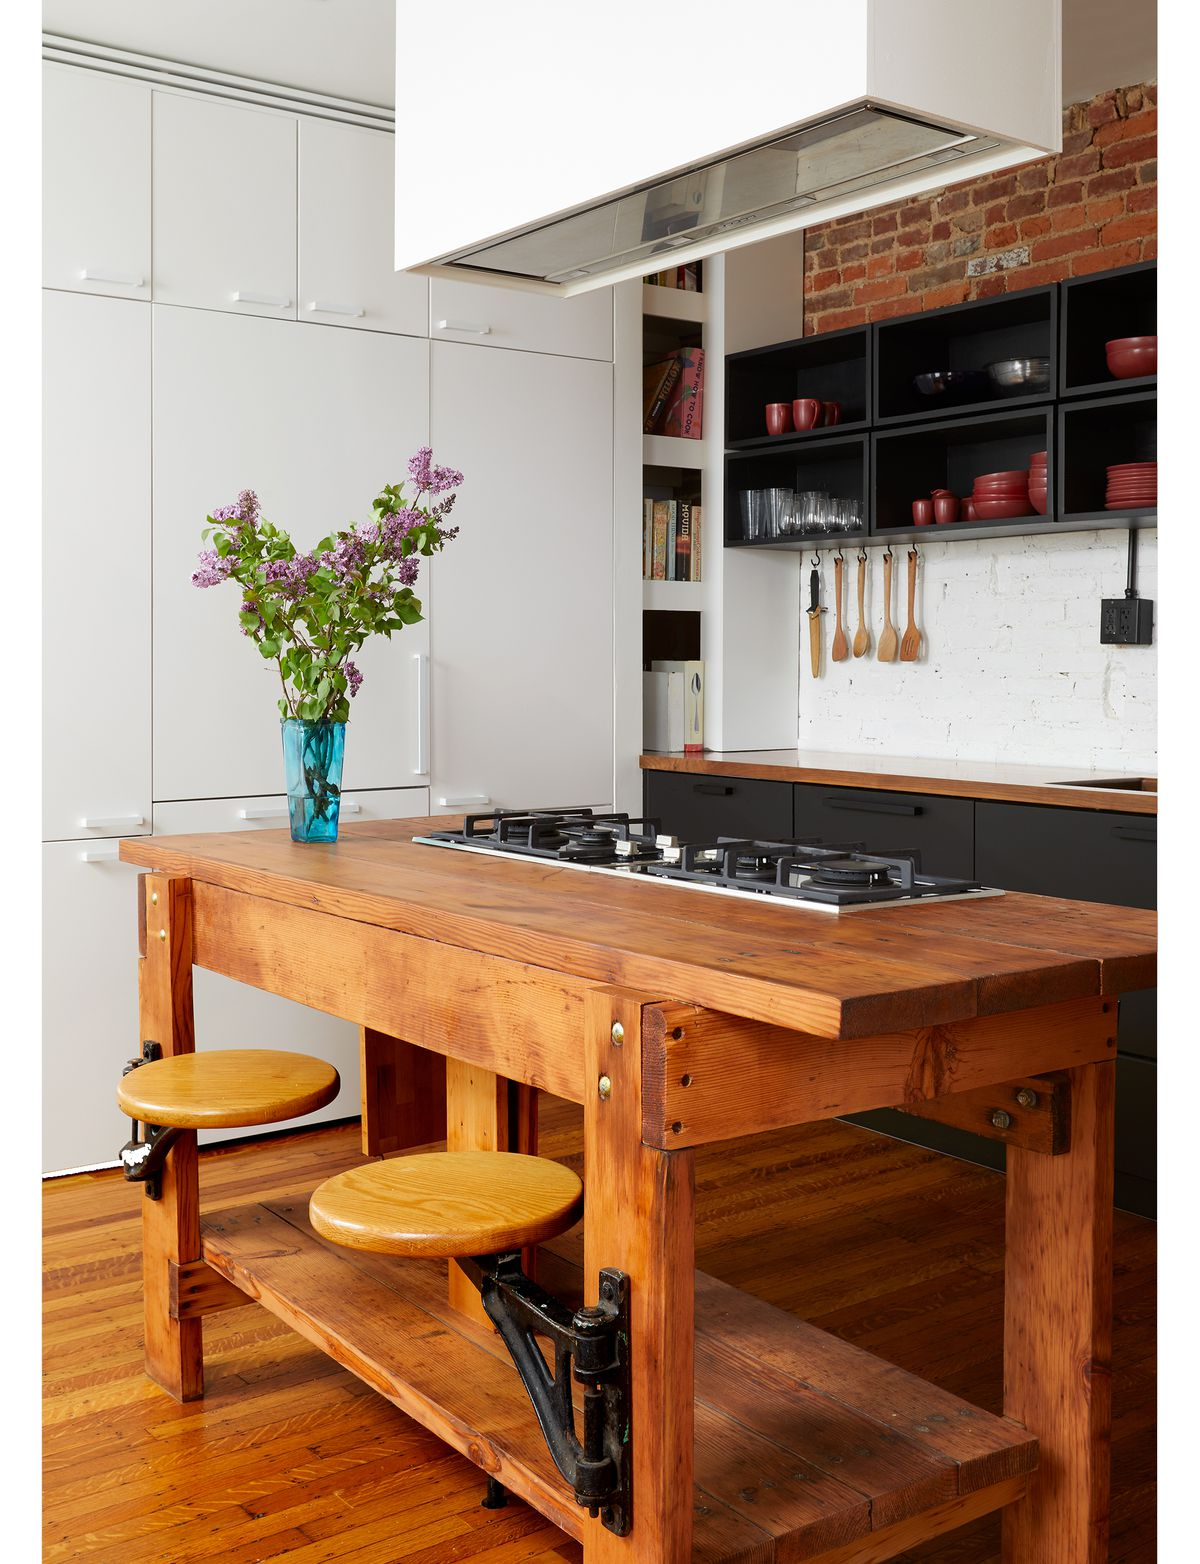 A kitchen. There is a large wooden kitchen island with attached stools. One wall is a row of white storage cabinets. The other wall has black kitchen cabinetry. At the top of the wall is red exposed brick.